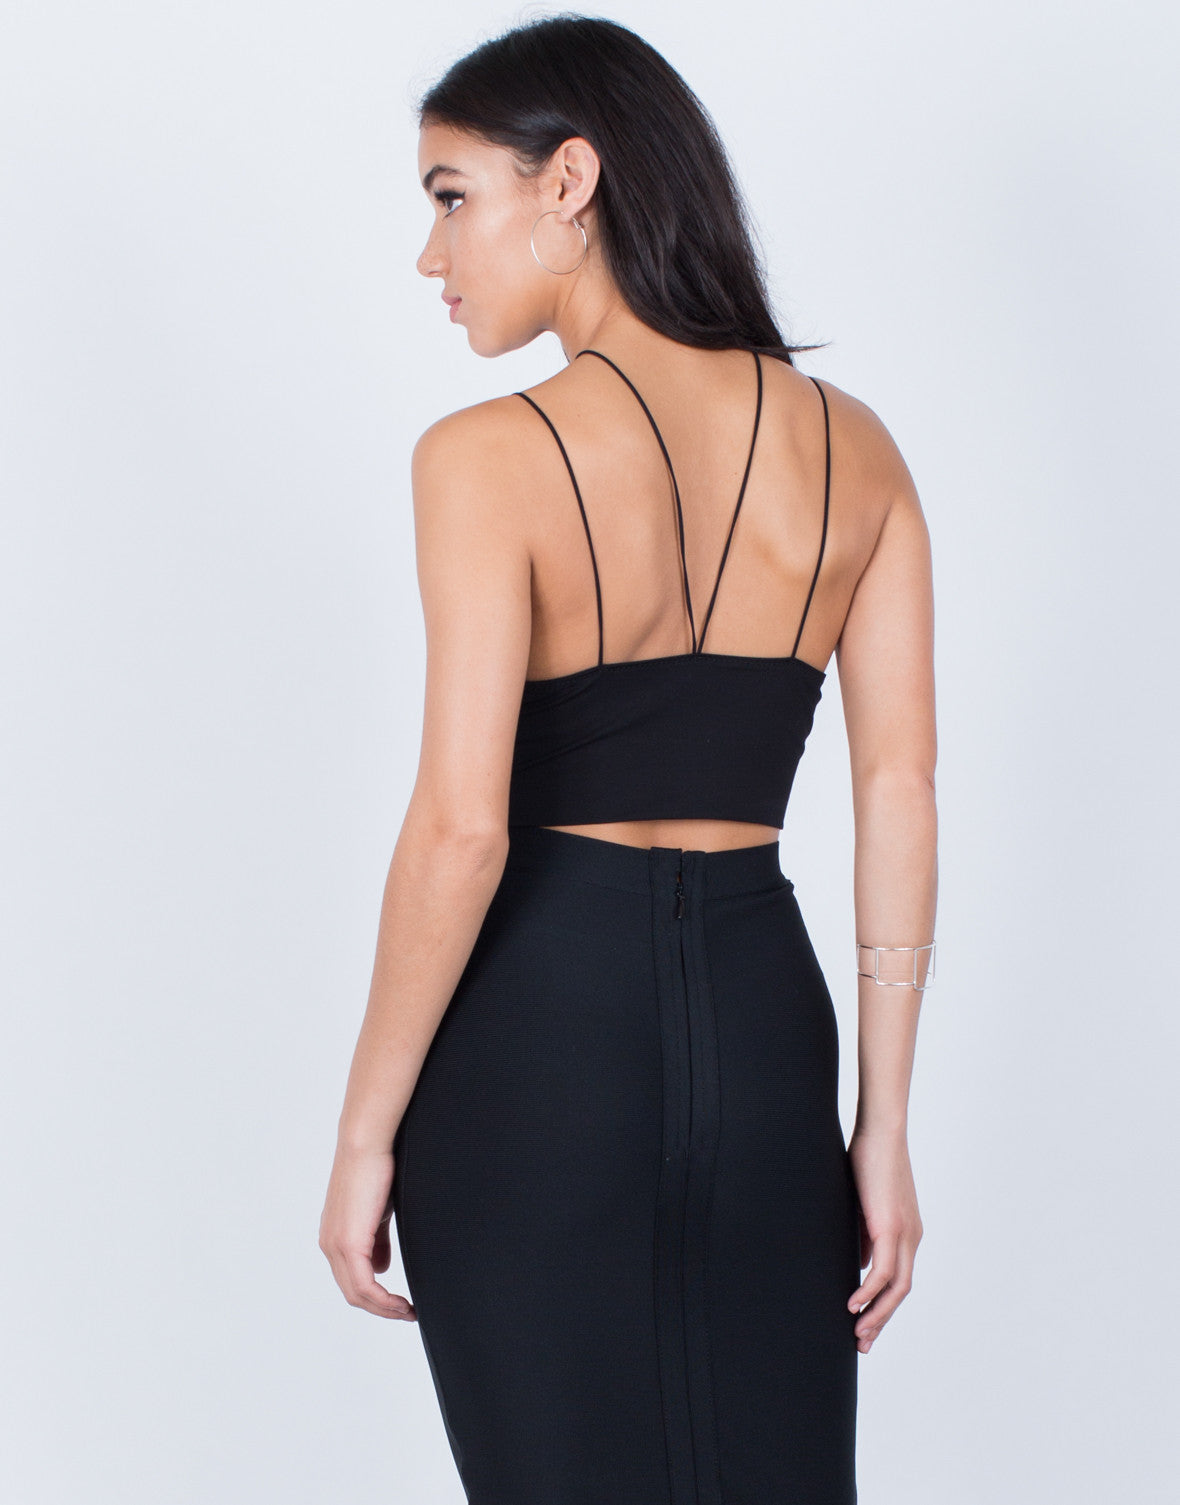 Back View of Strappy Knit Bralette Top